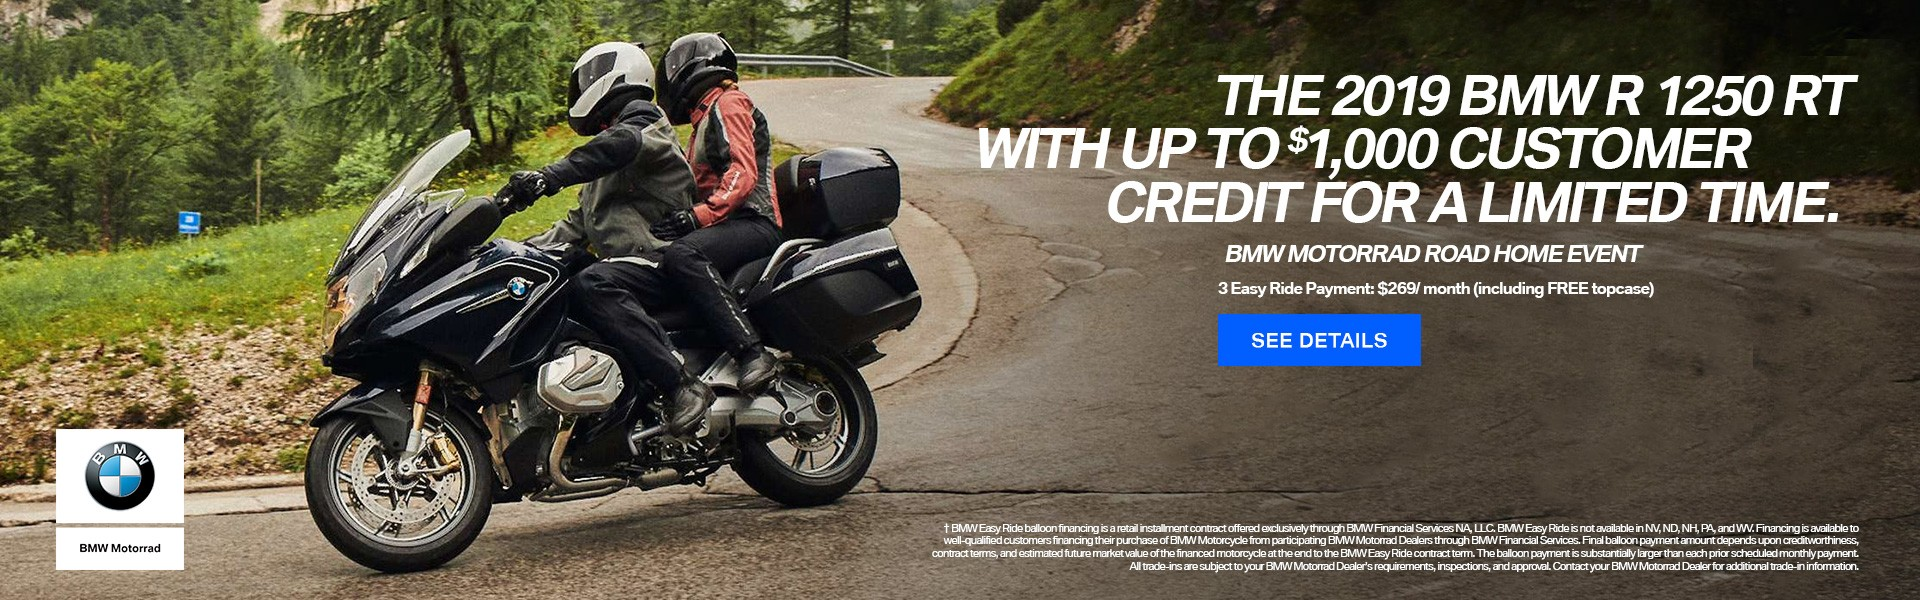 The 2019 BMW R 1250 RT with up to $1000 Customer Credit for a limited time.